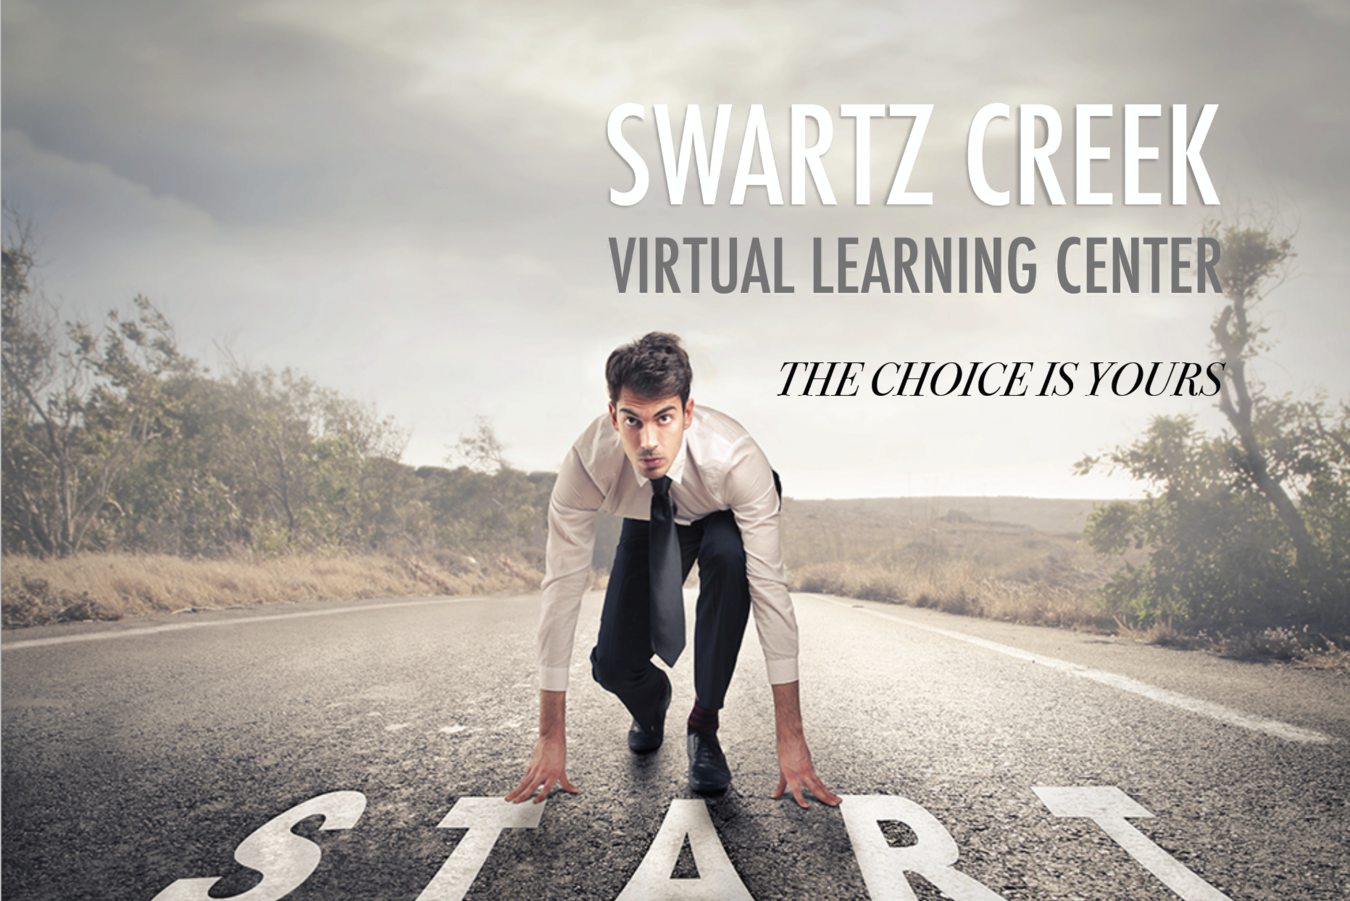 Swartz Creek Virtual Learning Center - The Choice Is Yours